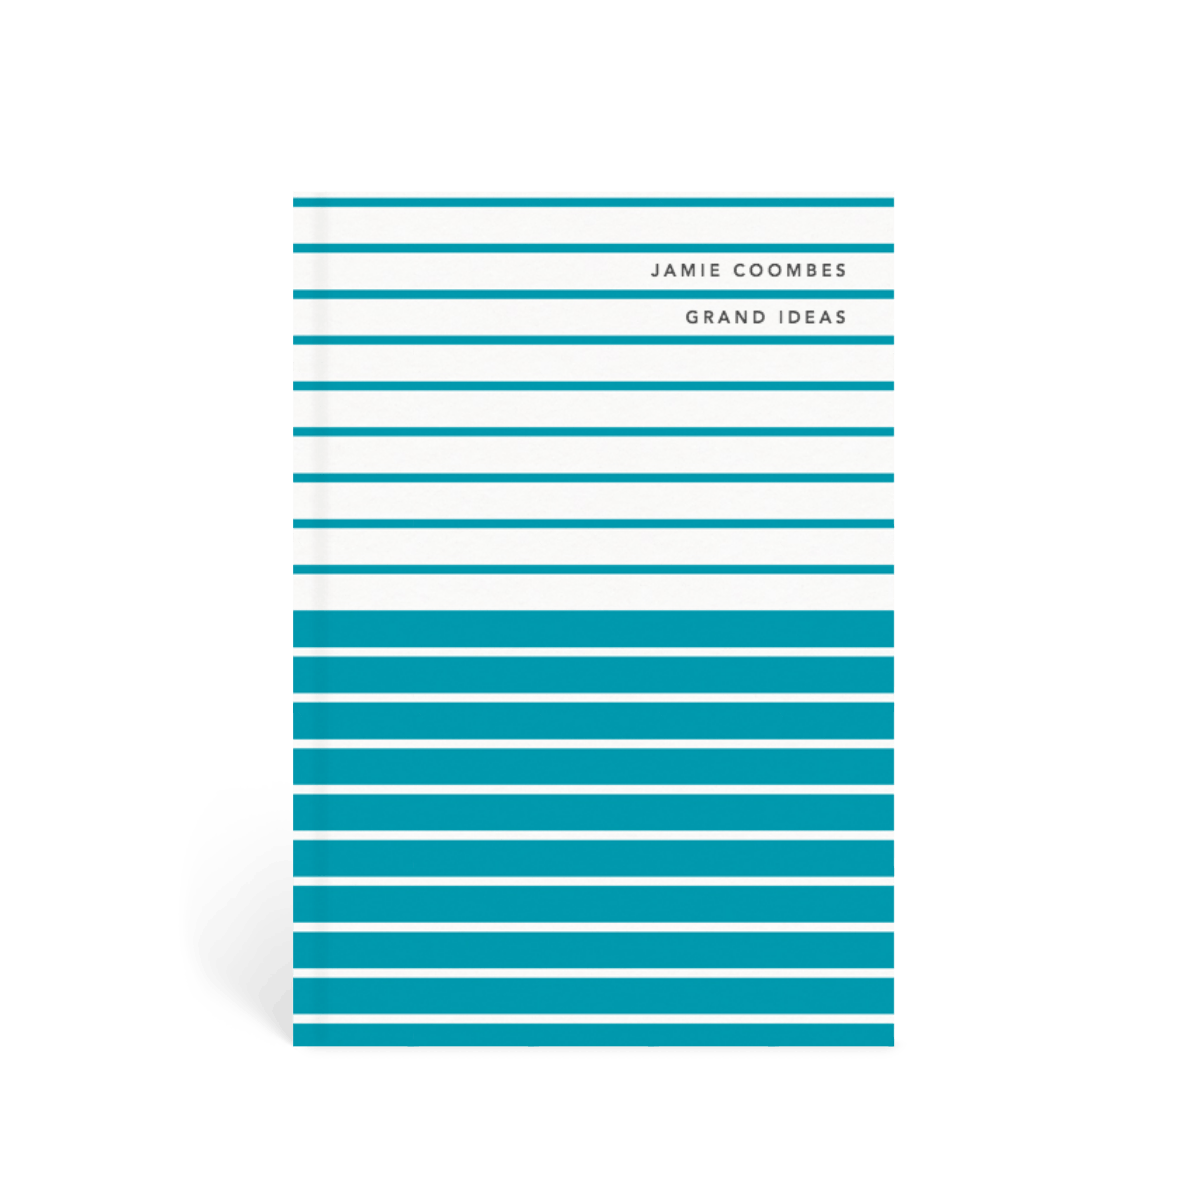 Https%3a%2f%2fwww.papier.com%2fproduct image%2f73177%2f25%2fdouble stripe 17204 front 1578411179.png?ixlib=rb 1.1